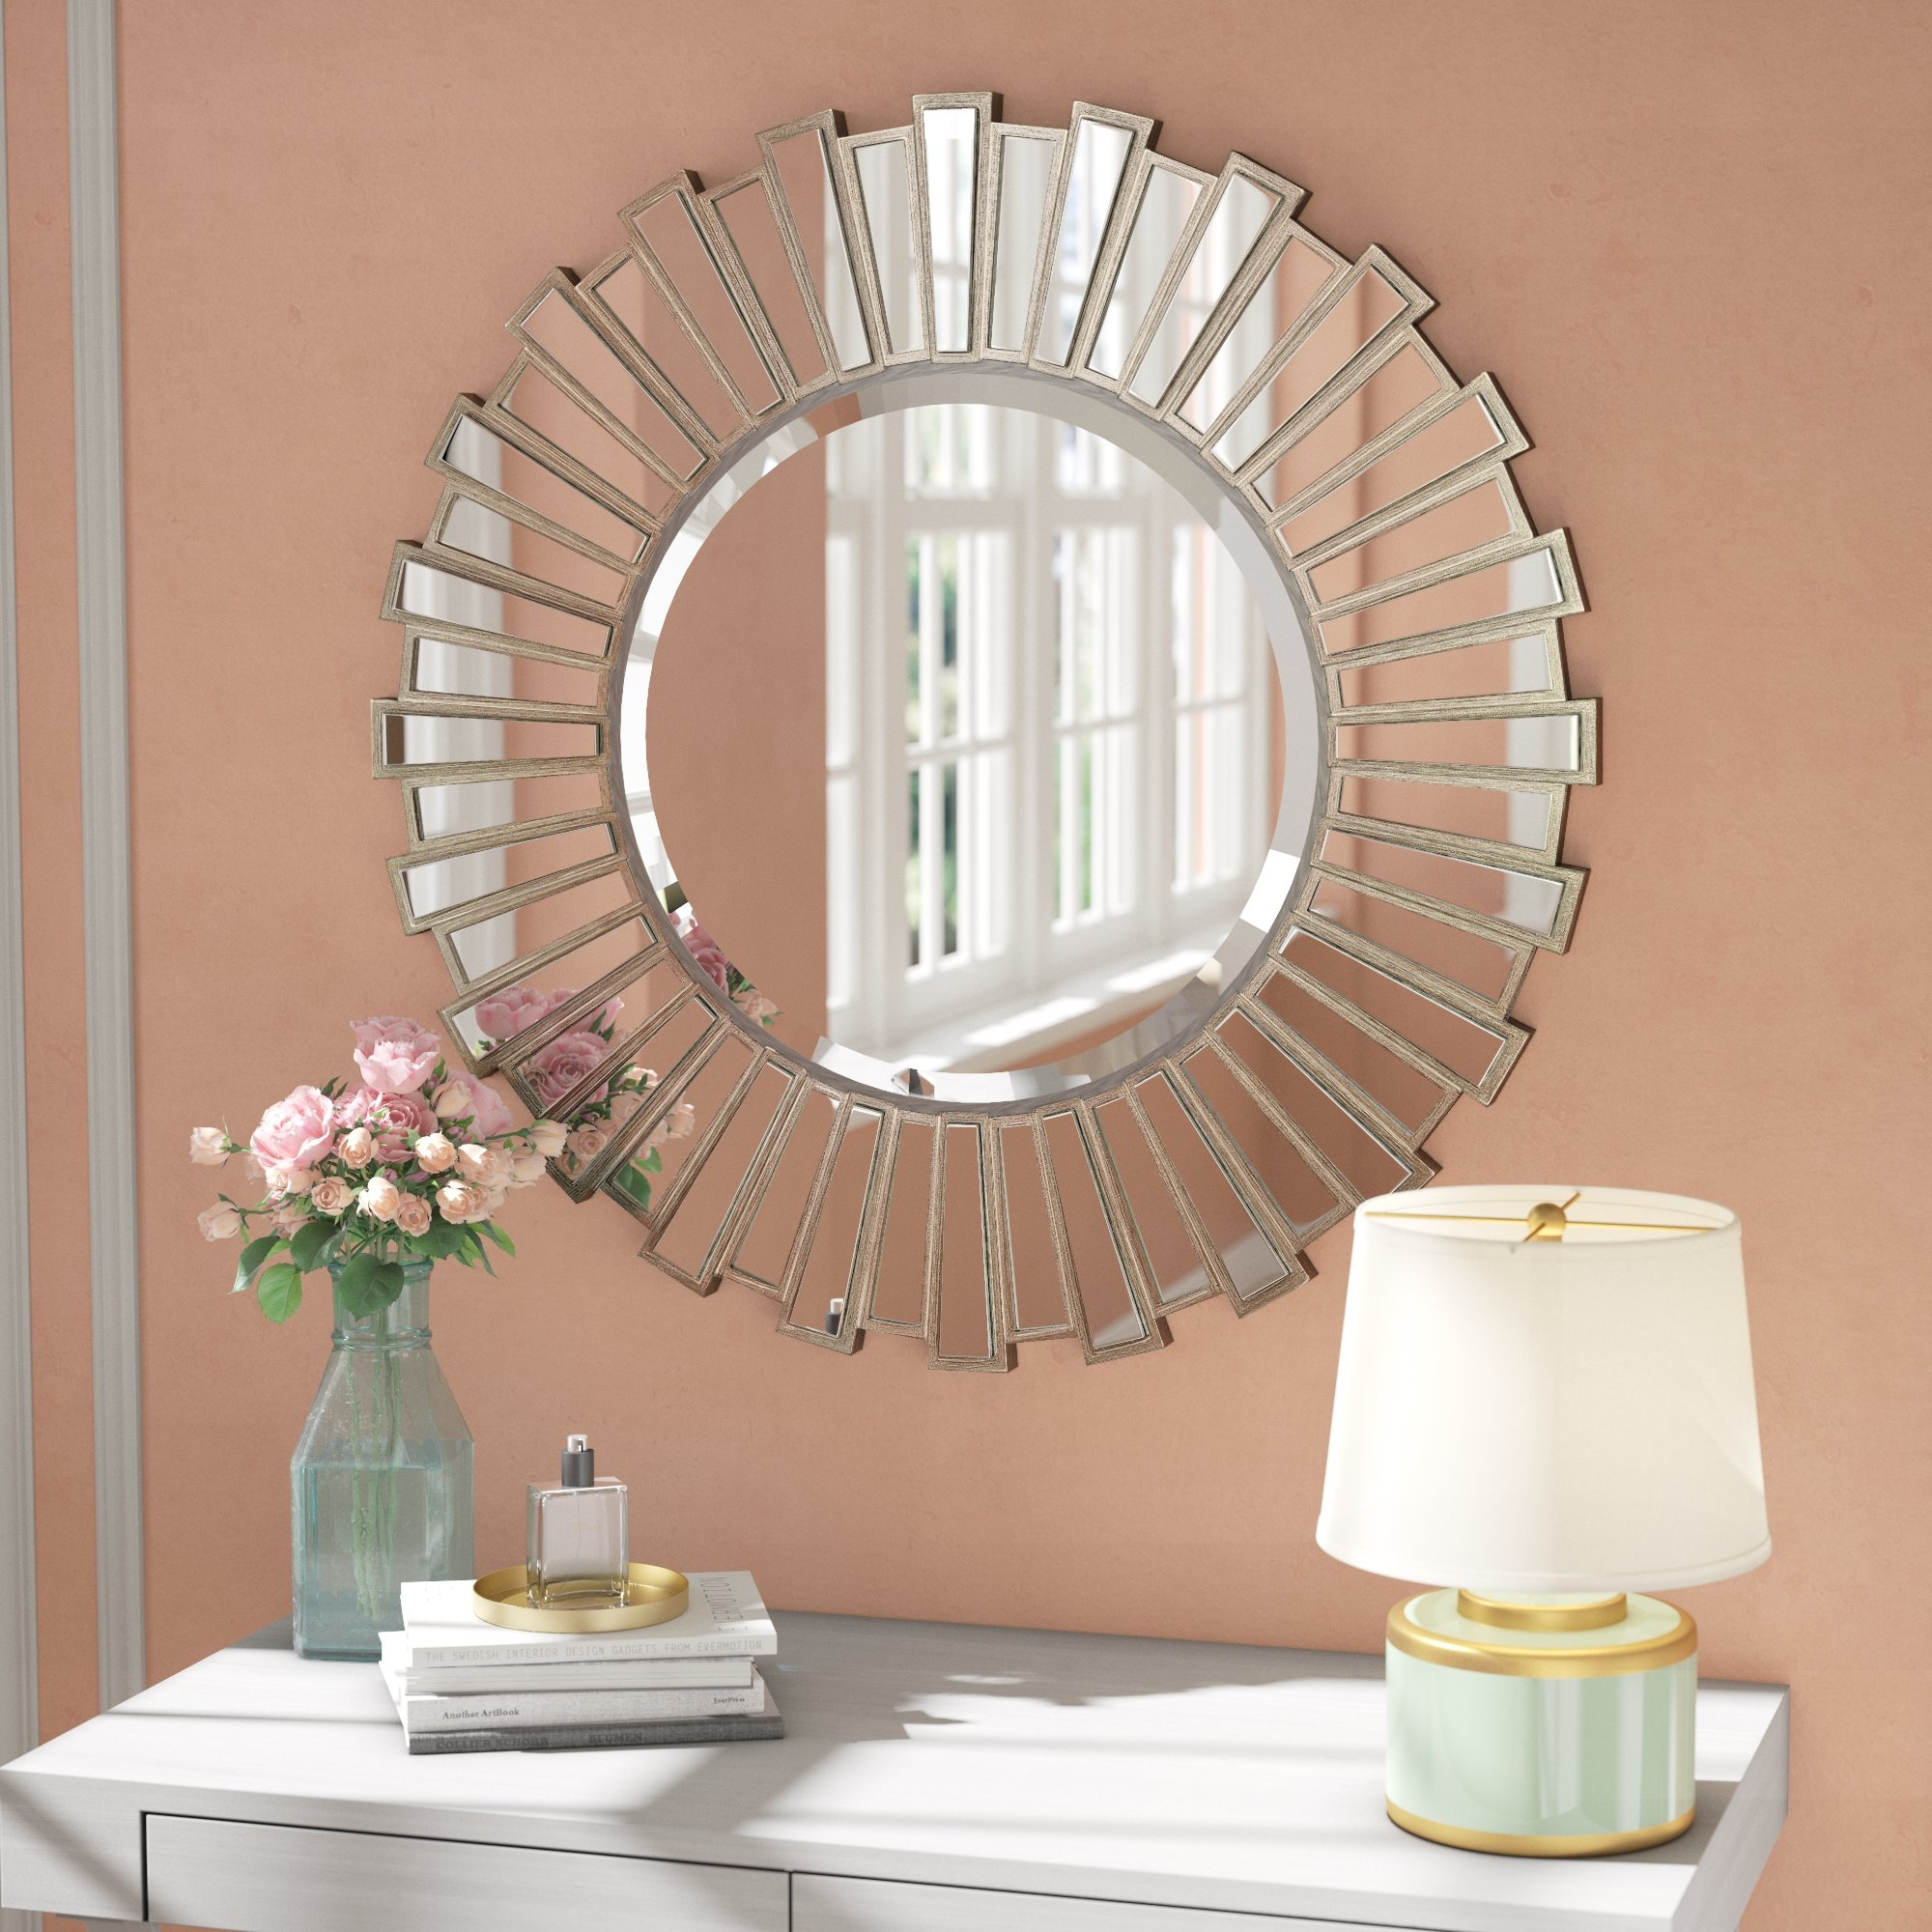 Soleil Mirror | Wayfair Regarding Carstens Sunburst Leaves Wall Mirrors (Image 16 of 20)